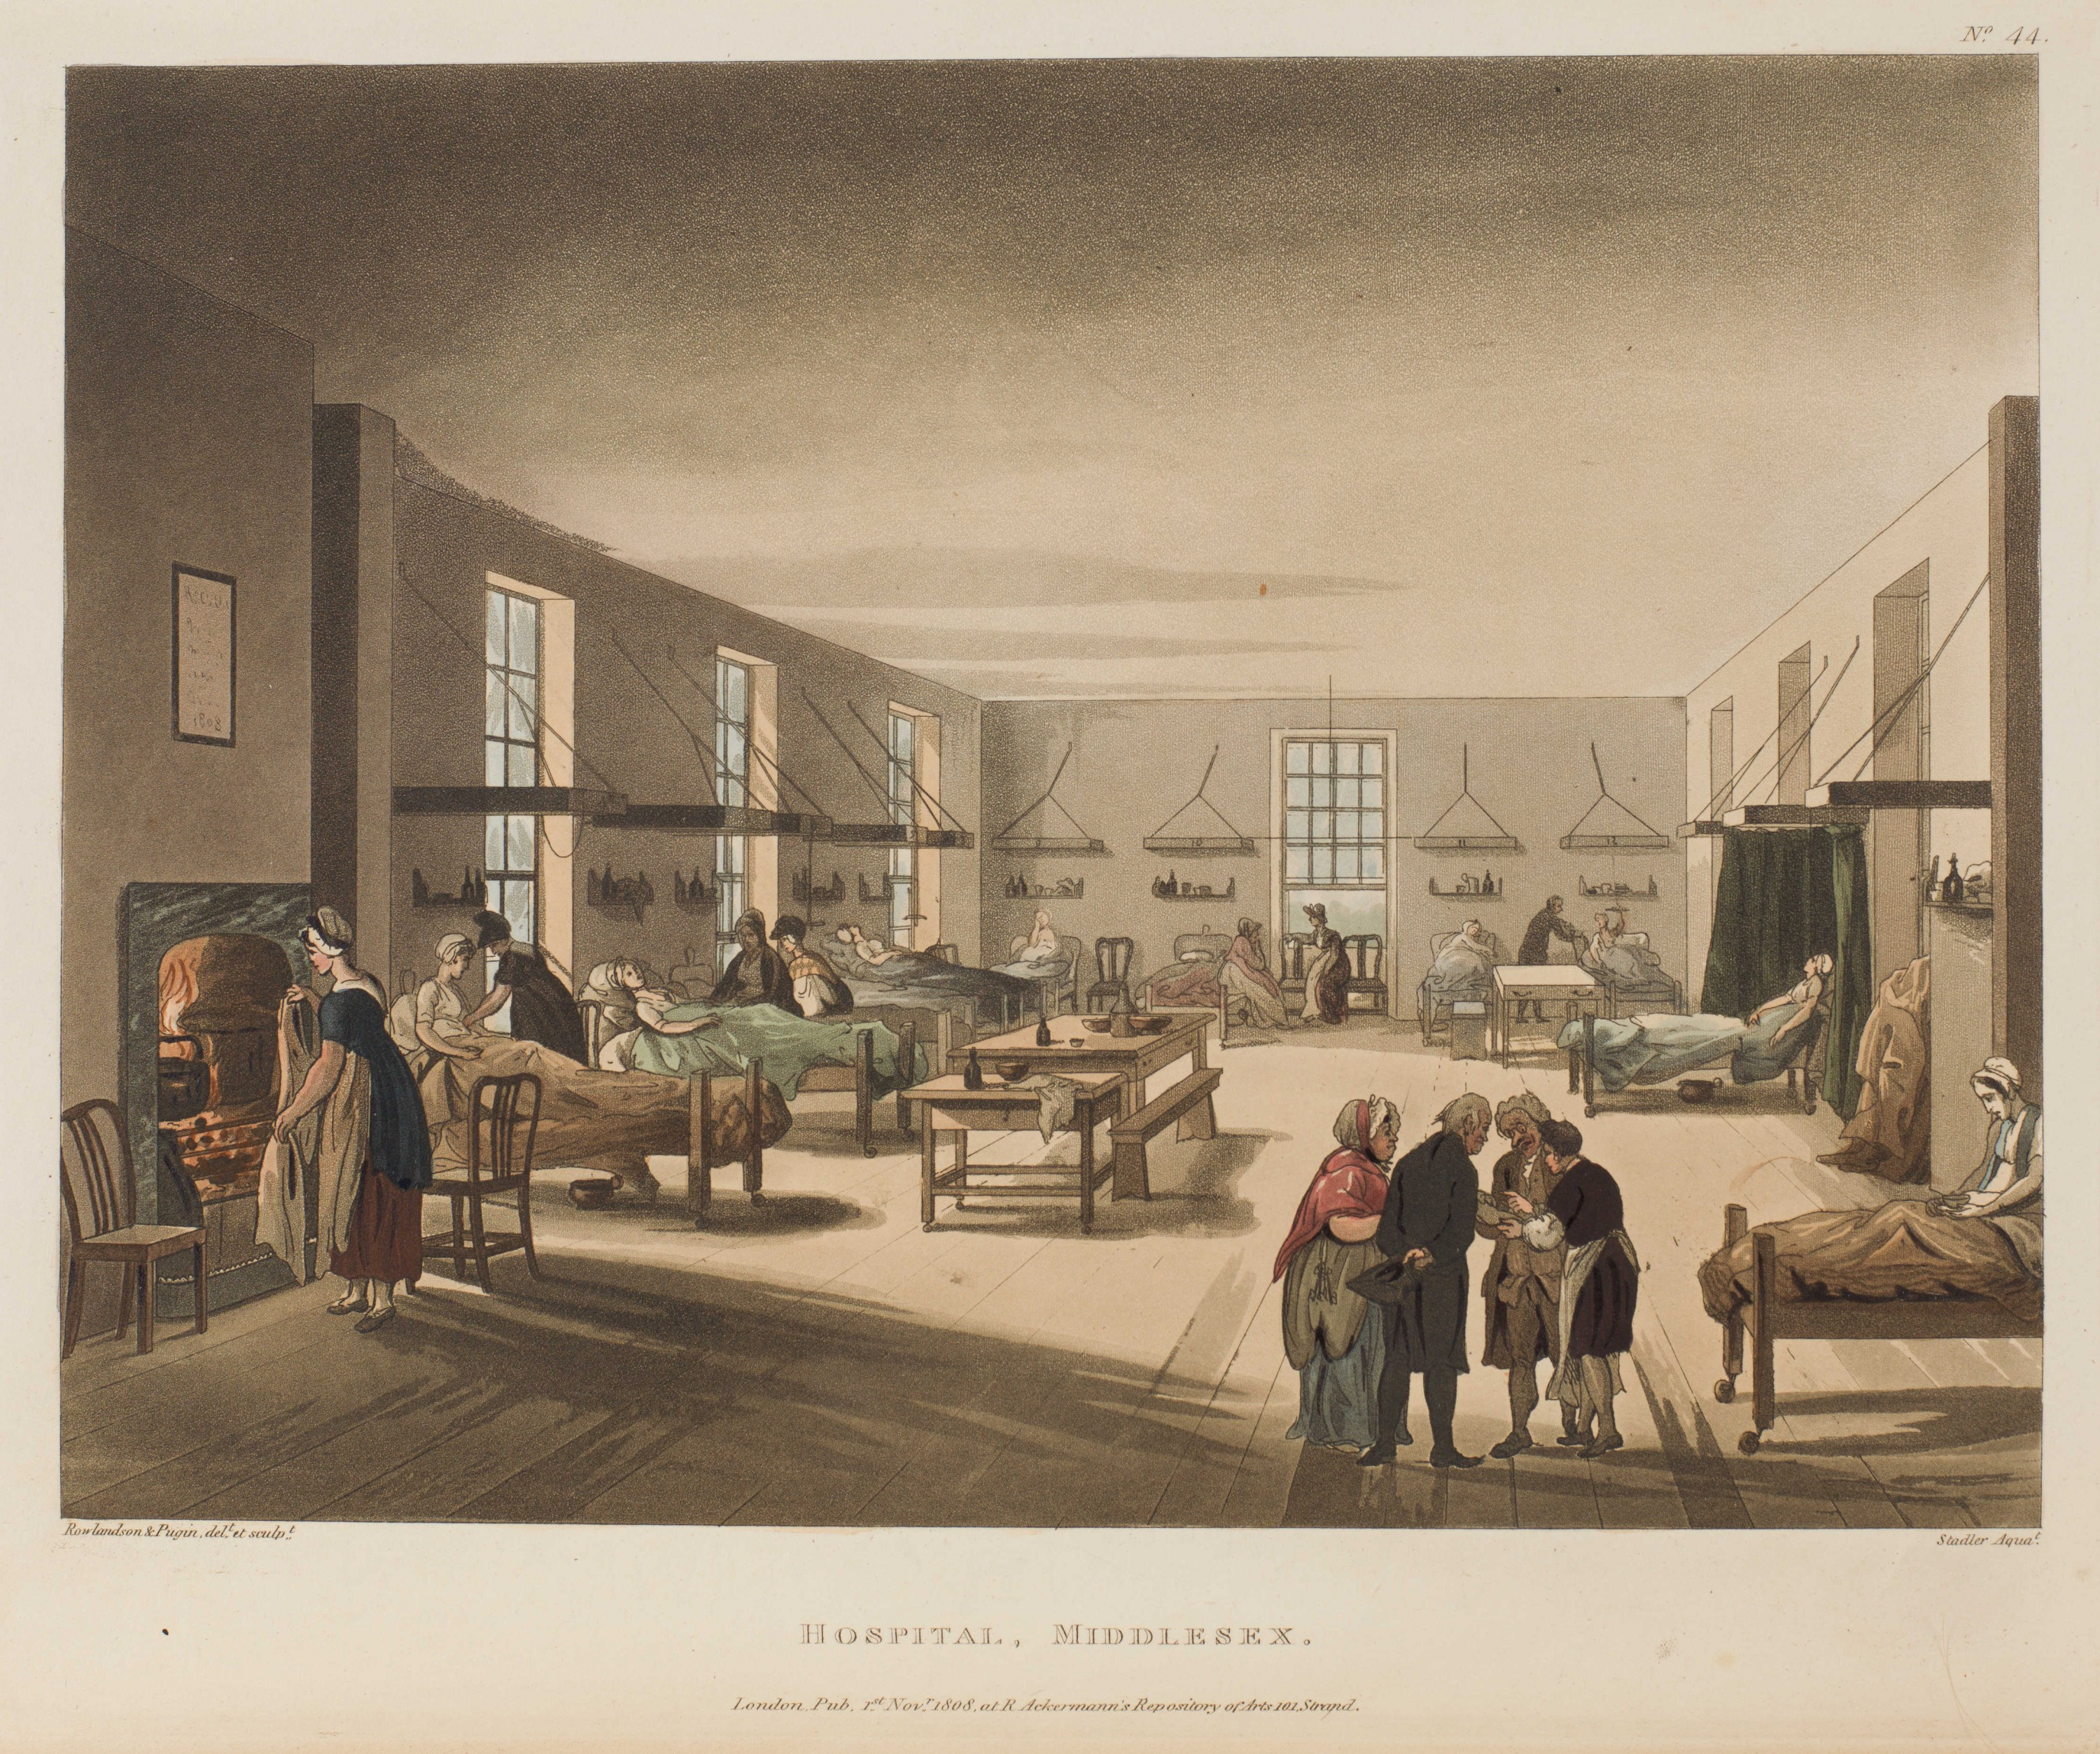 044-Hospital-Middlesex